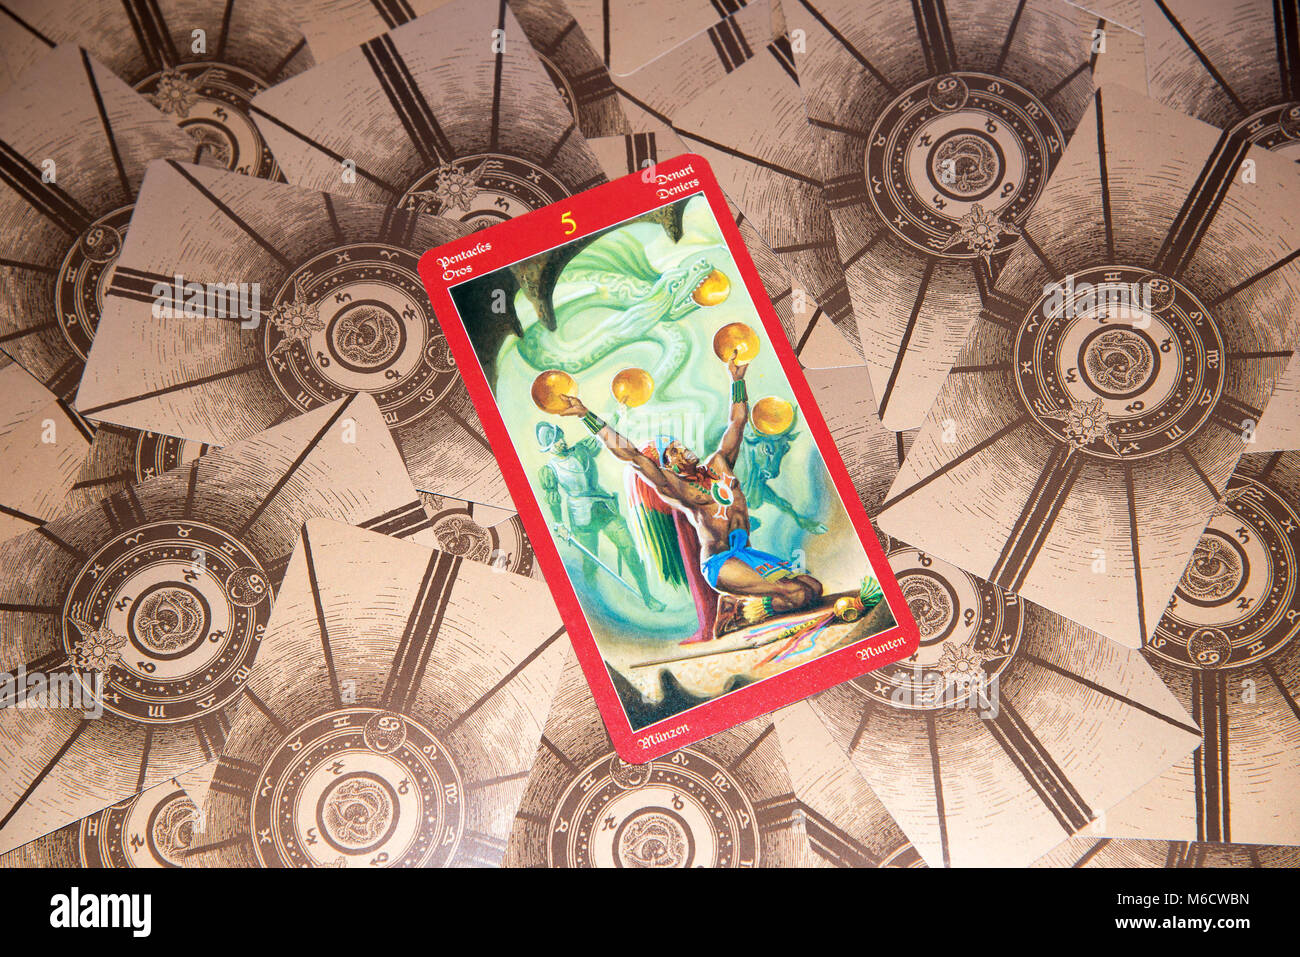 Tarot Cards Five Pentacles Stock Photos Tarot Cards Five Pentacles